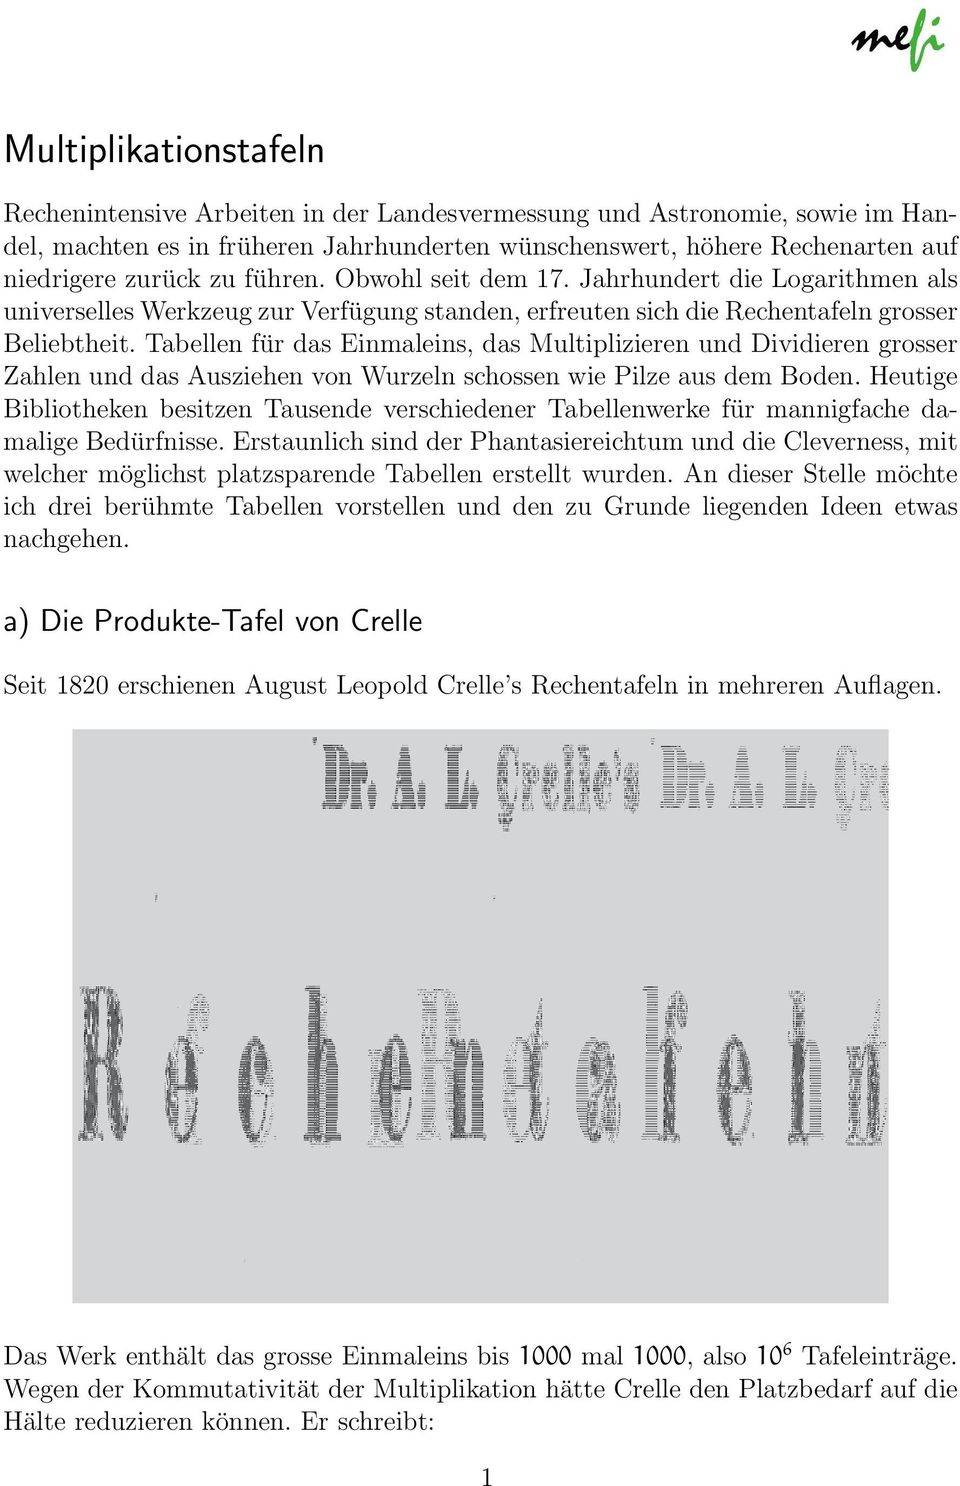 Multiplikationstafeln - PDF